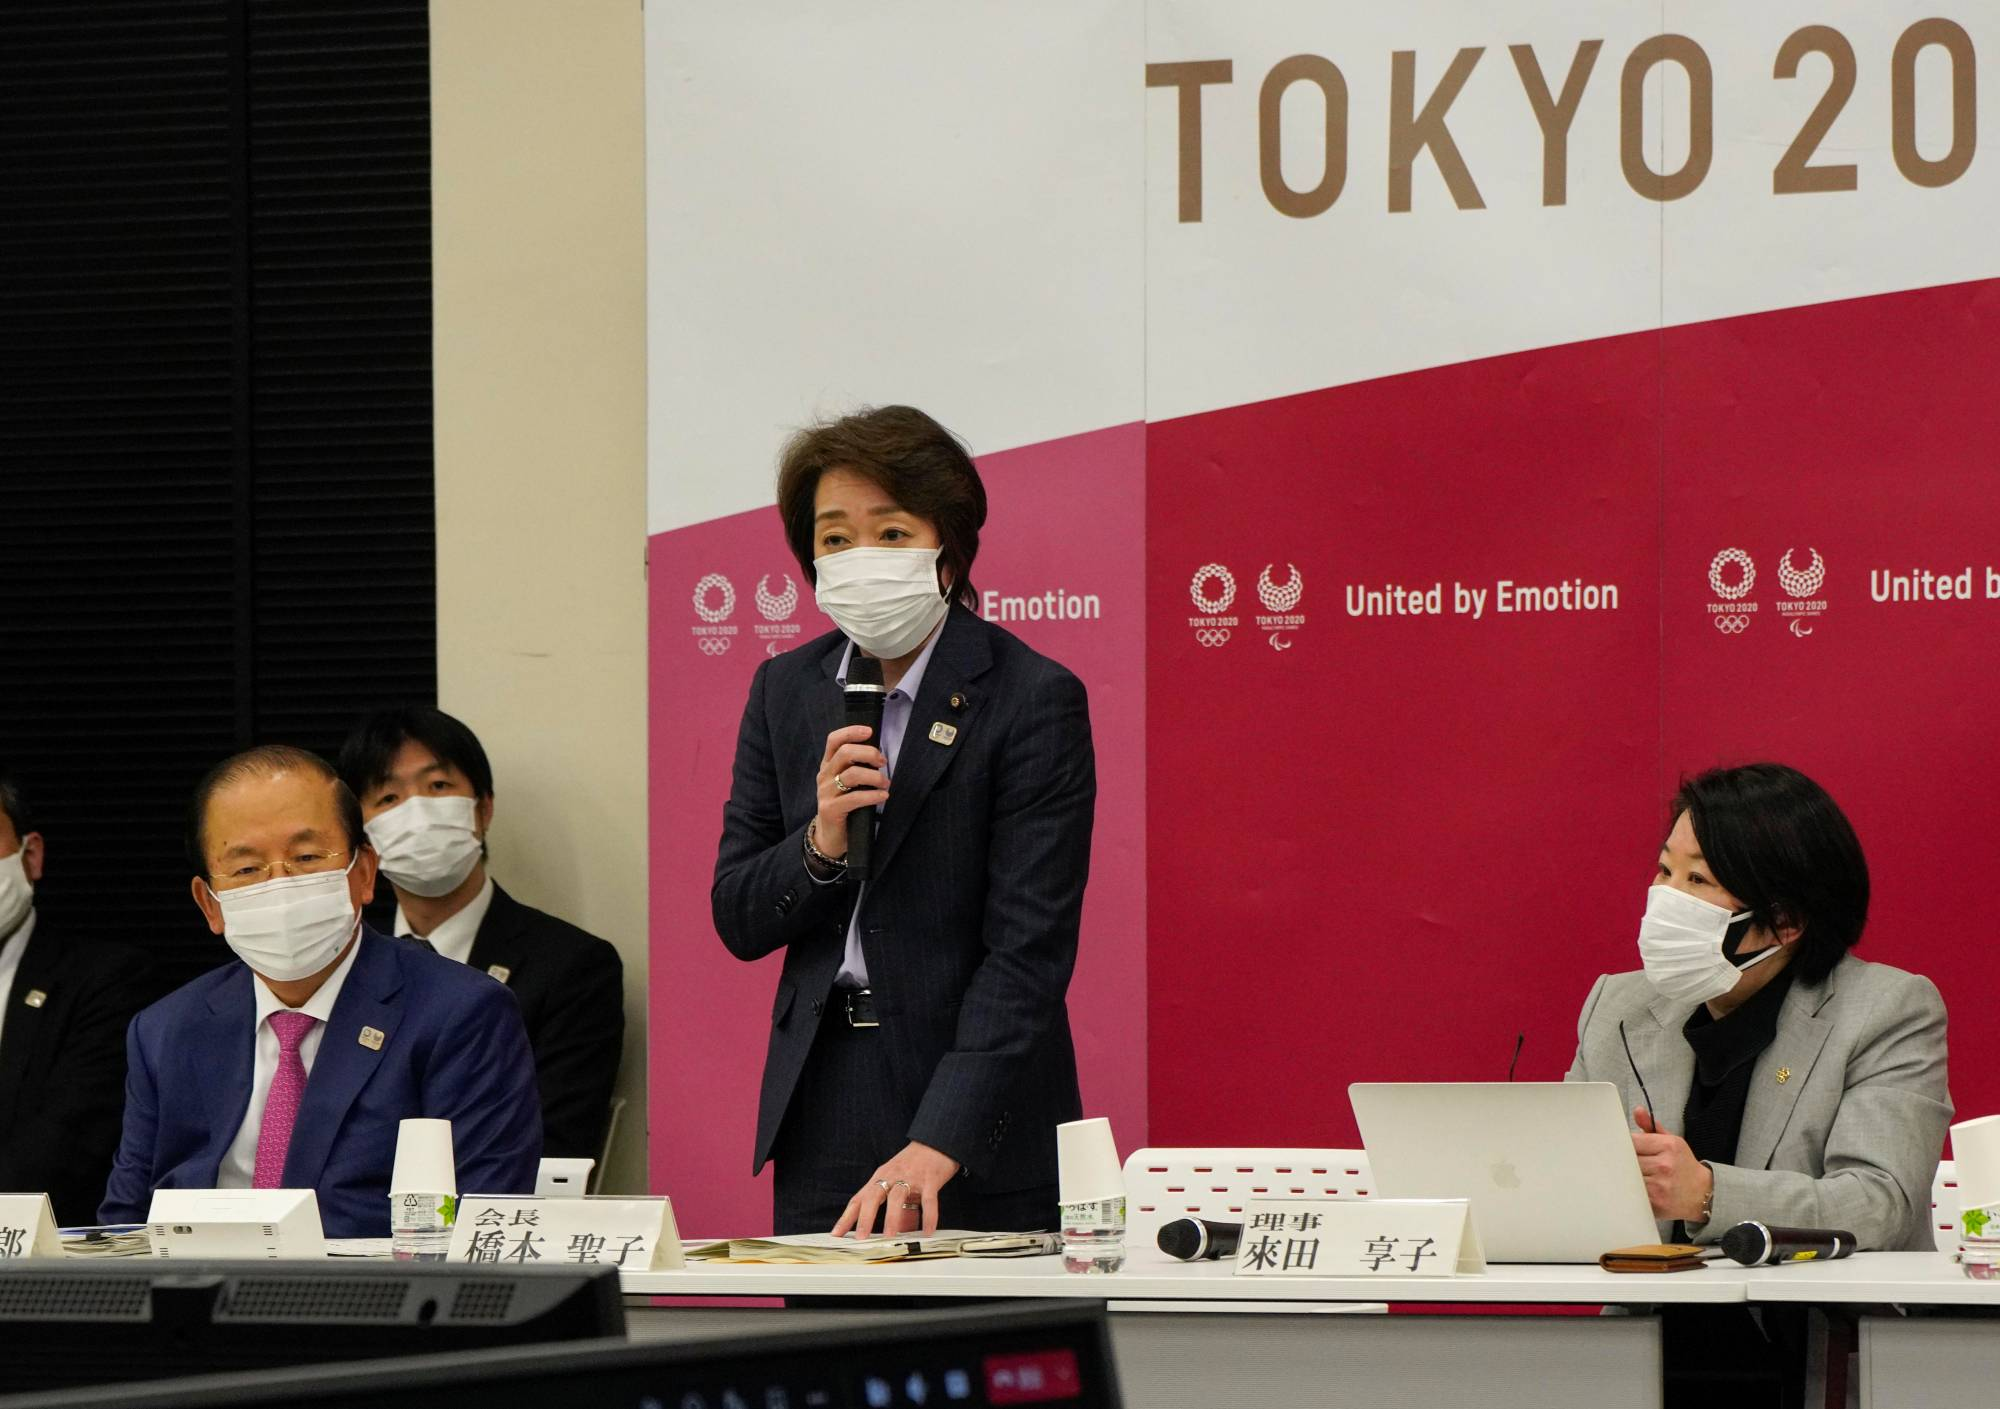 Seiko Hashimoto, president of the Tokyo 2020 Organising Committee of the Olympic and Paralympic Games, speaks during a news conference in Tokyo Monday. | POOL / VIA REUTERS